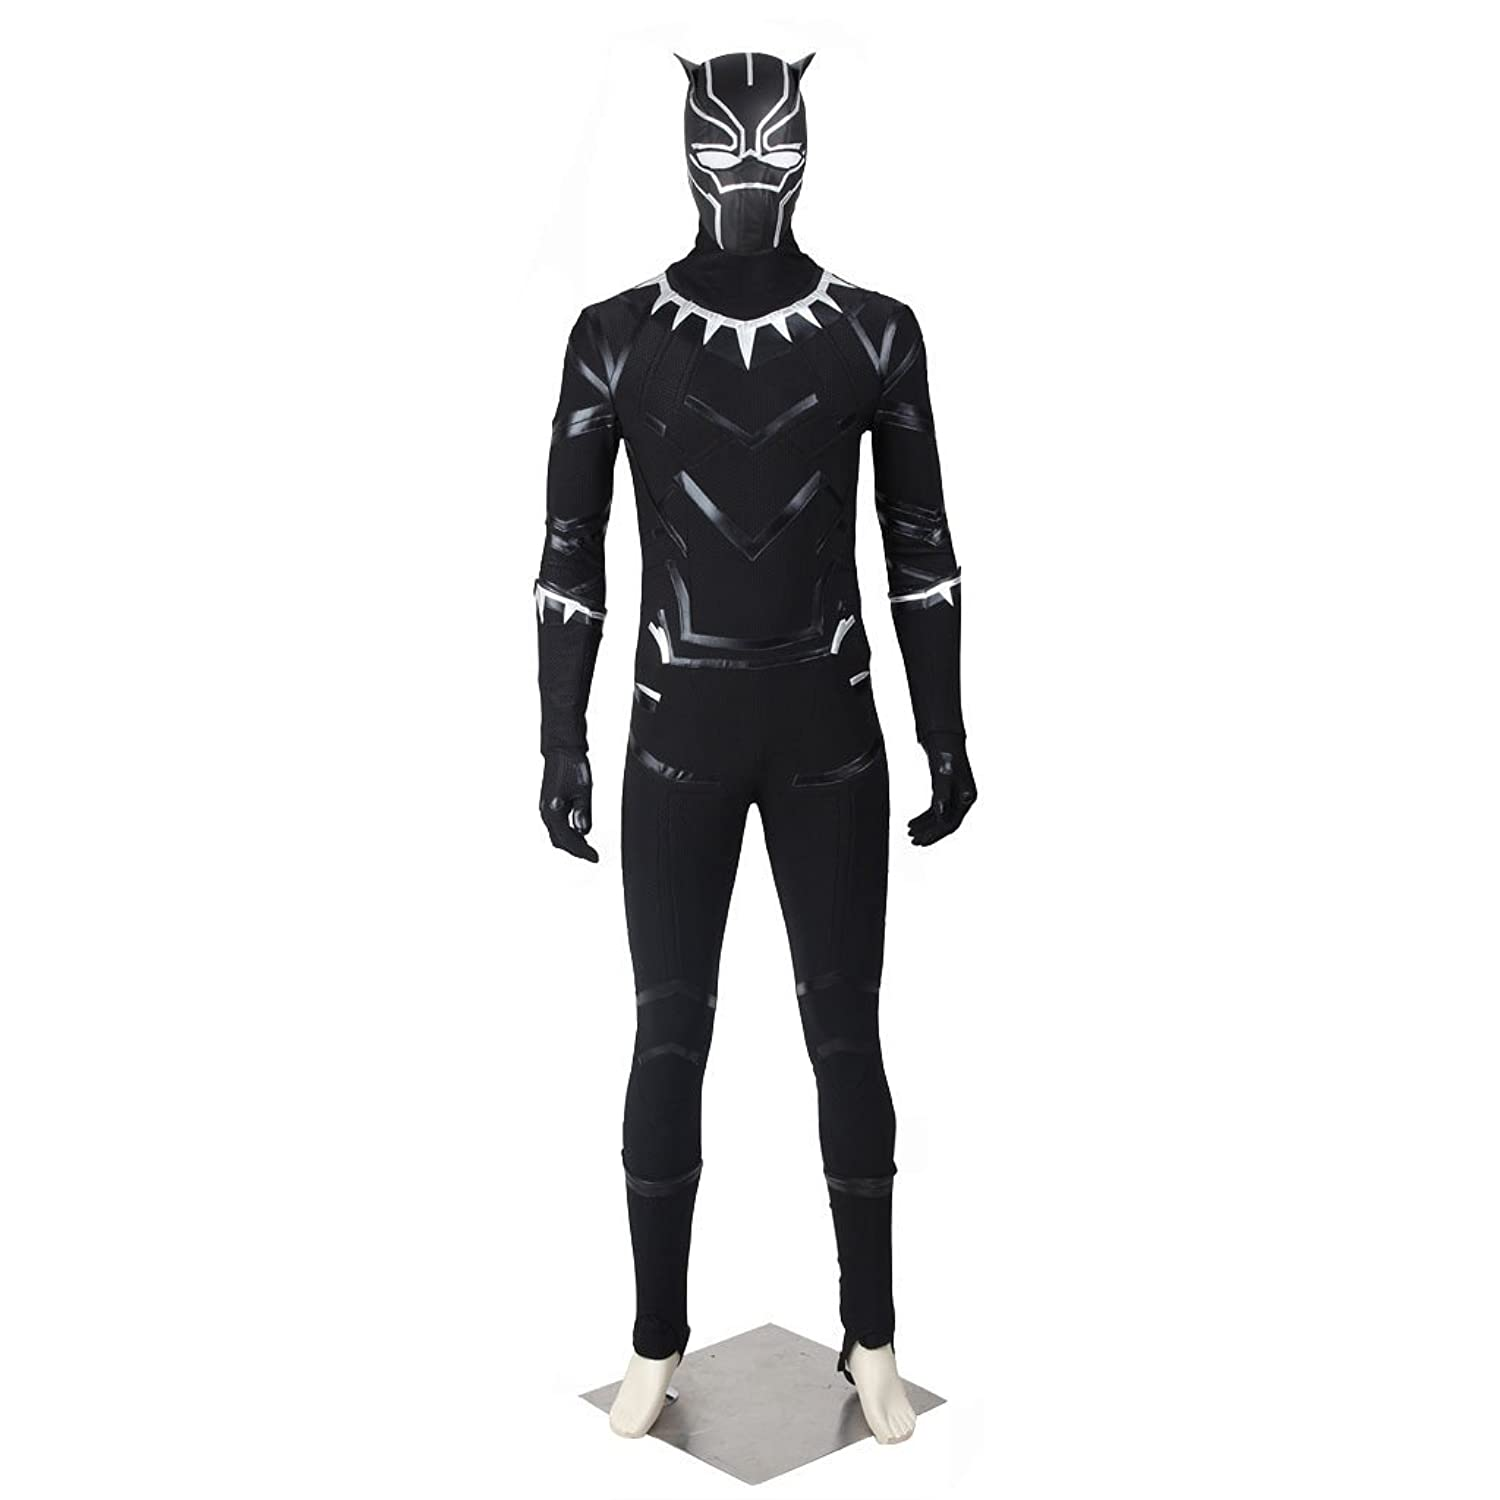 CosplayDiy Men's Suit for Captain America 3 Civil War Black Panther Cosplay